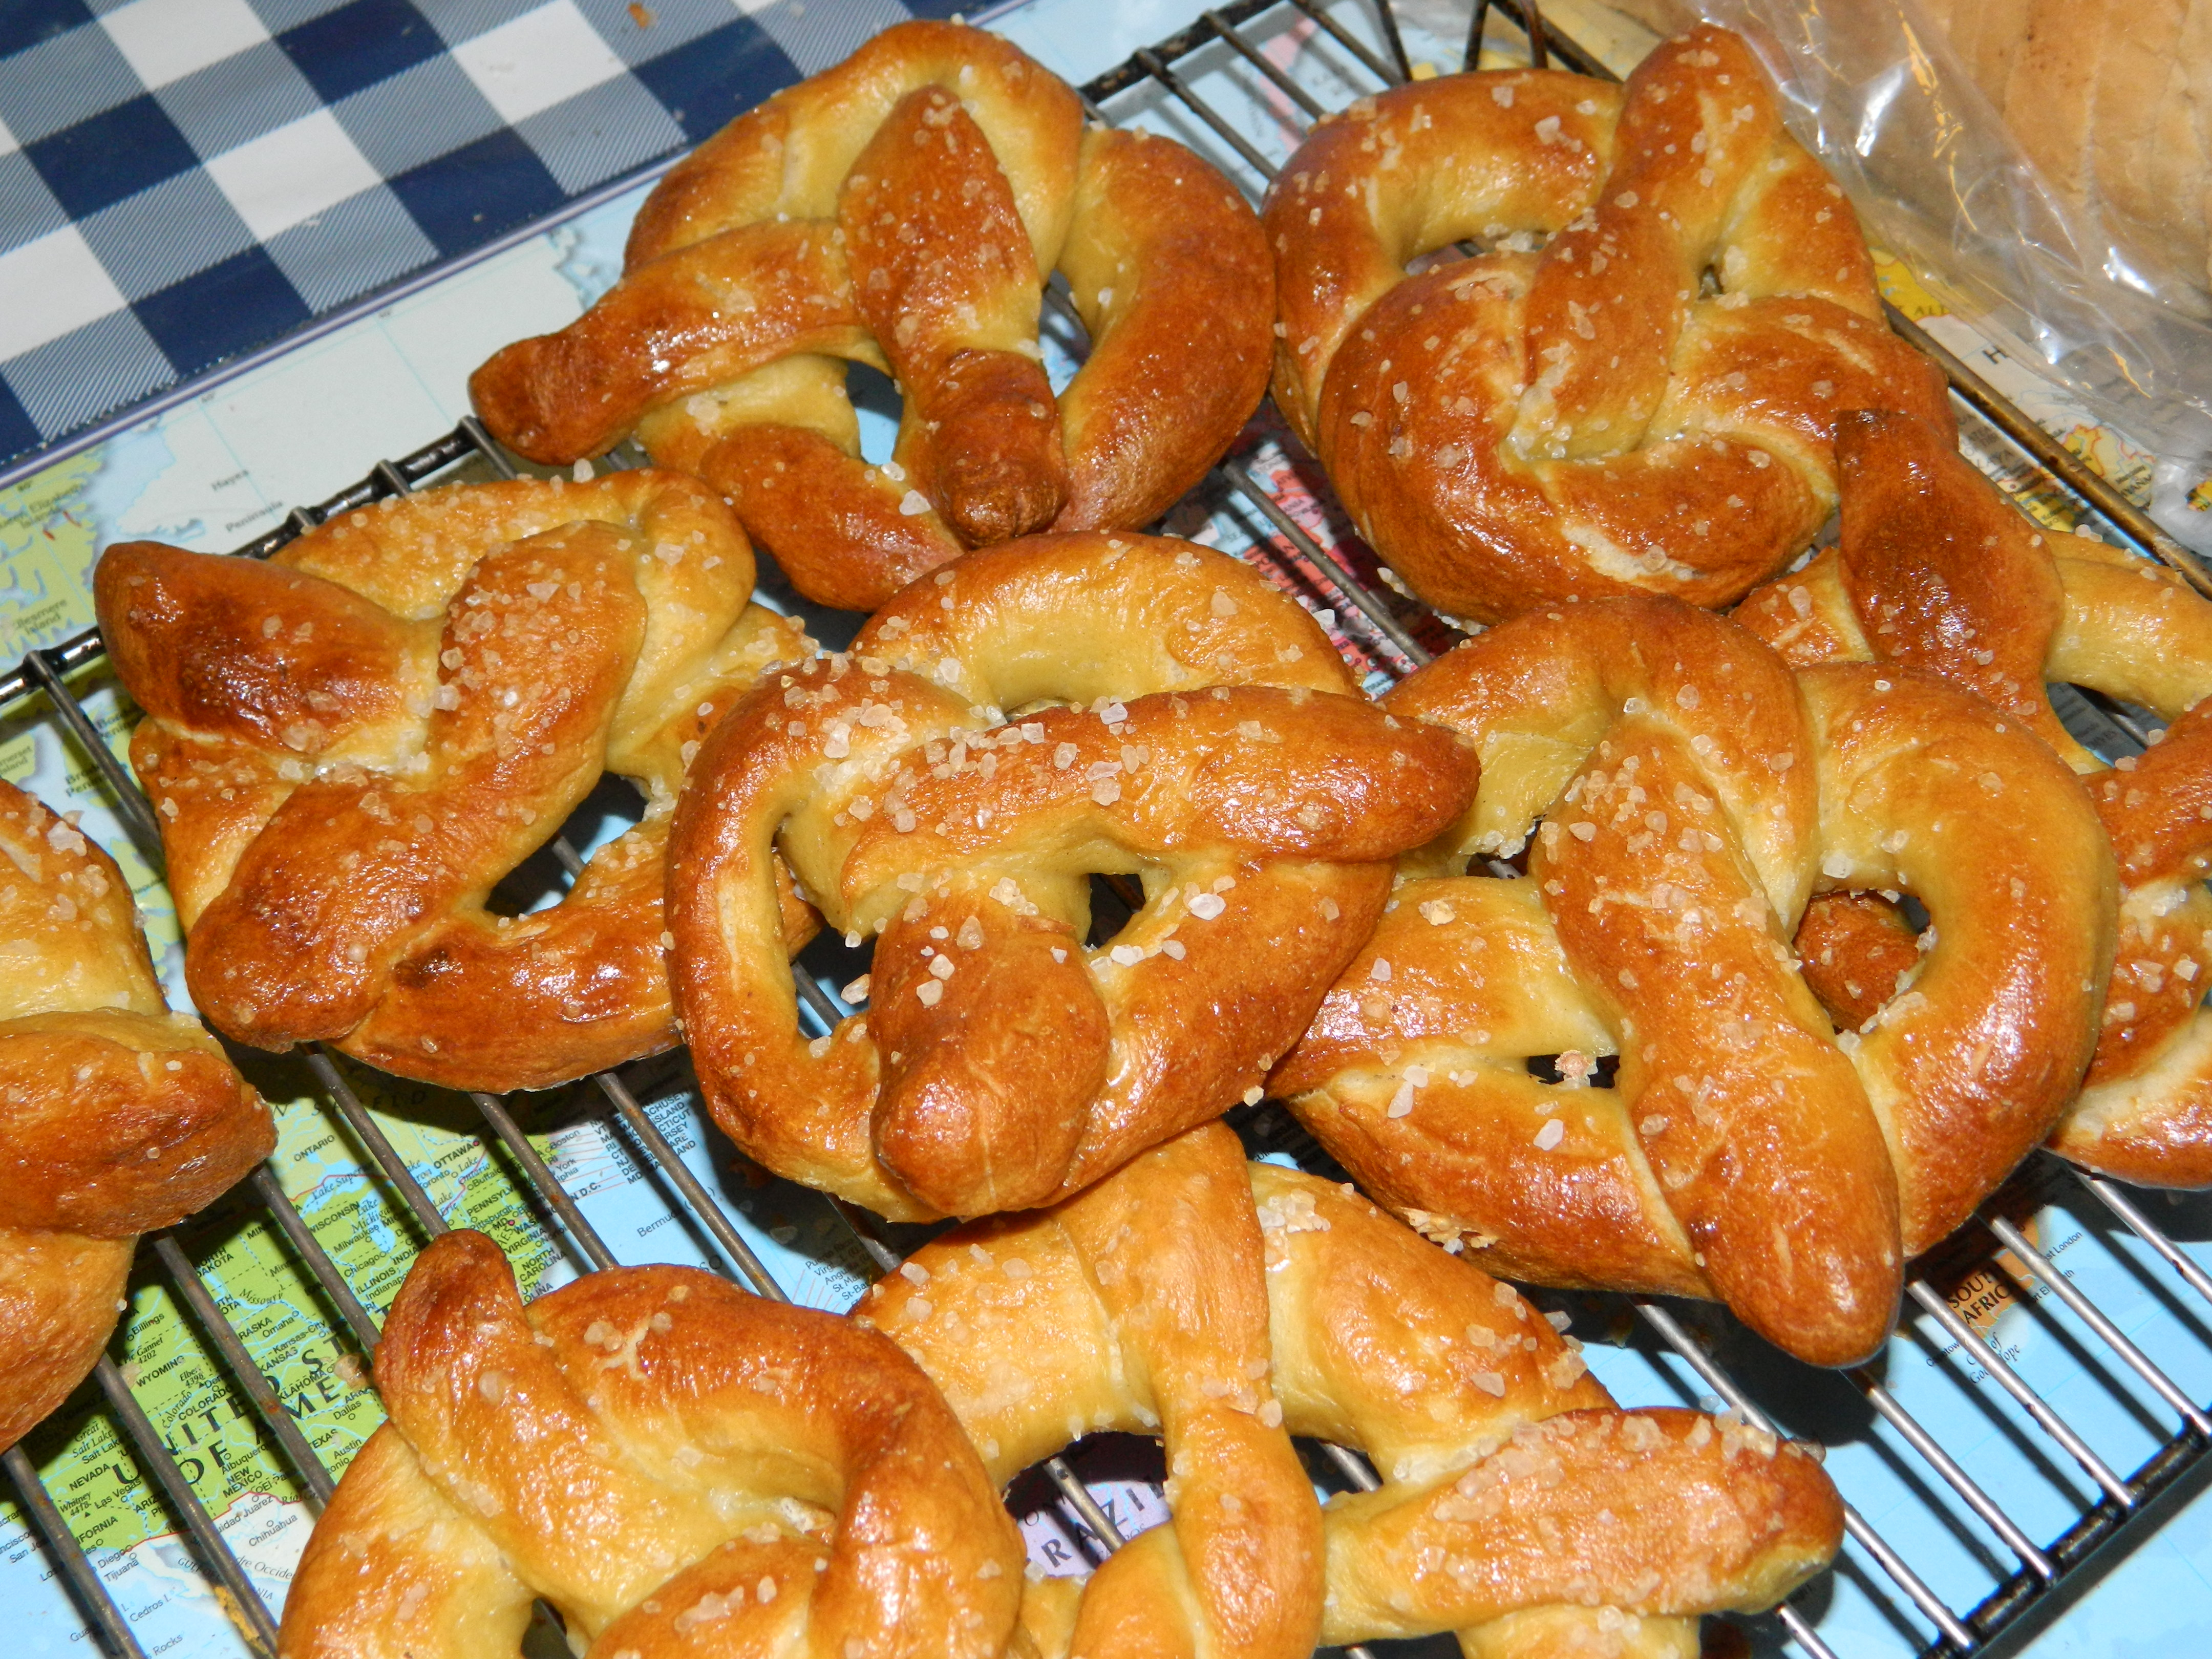 Homemade Pretzels (2 types: Traditional and Cream Cheese Filled)